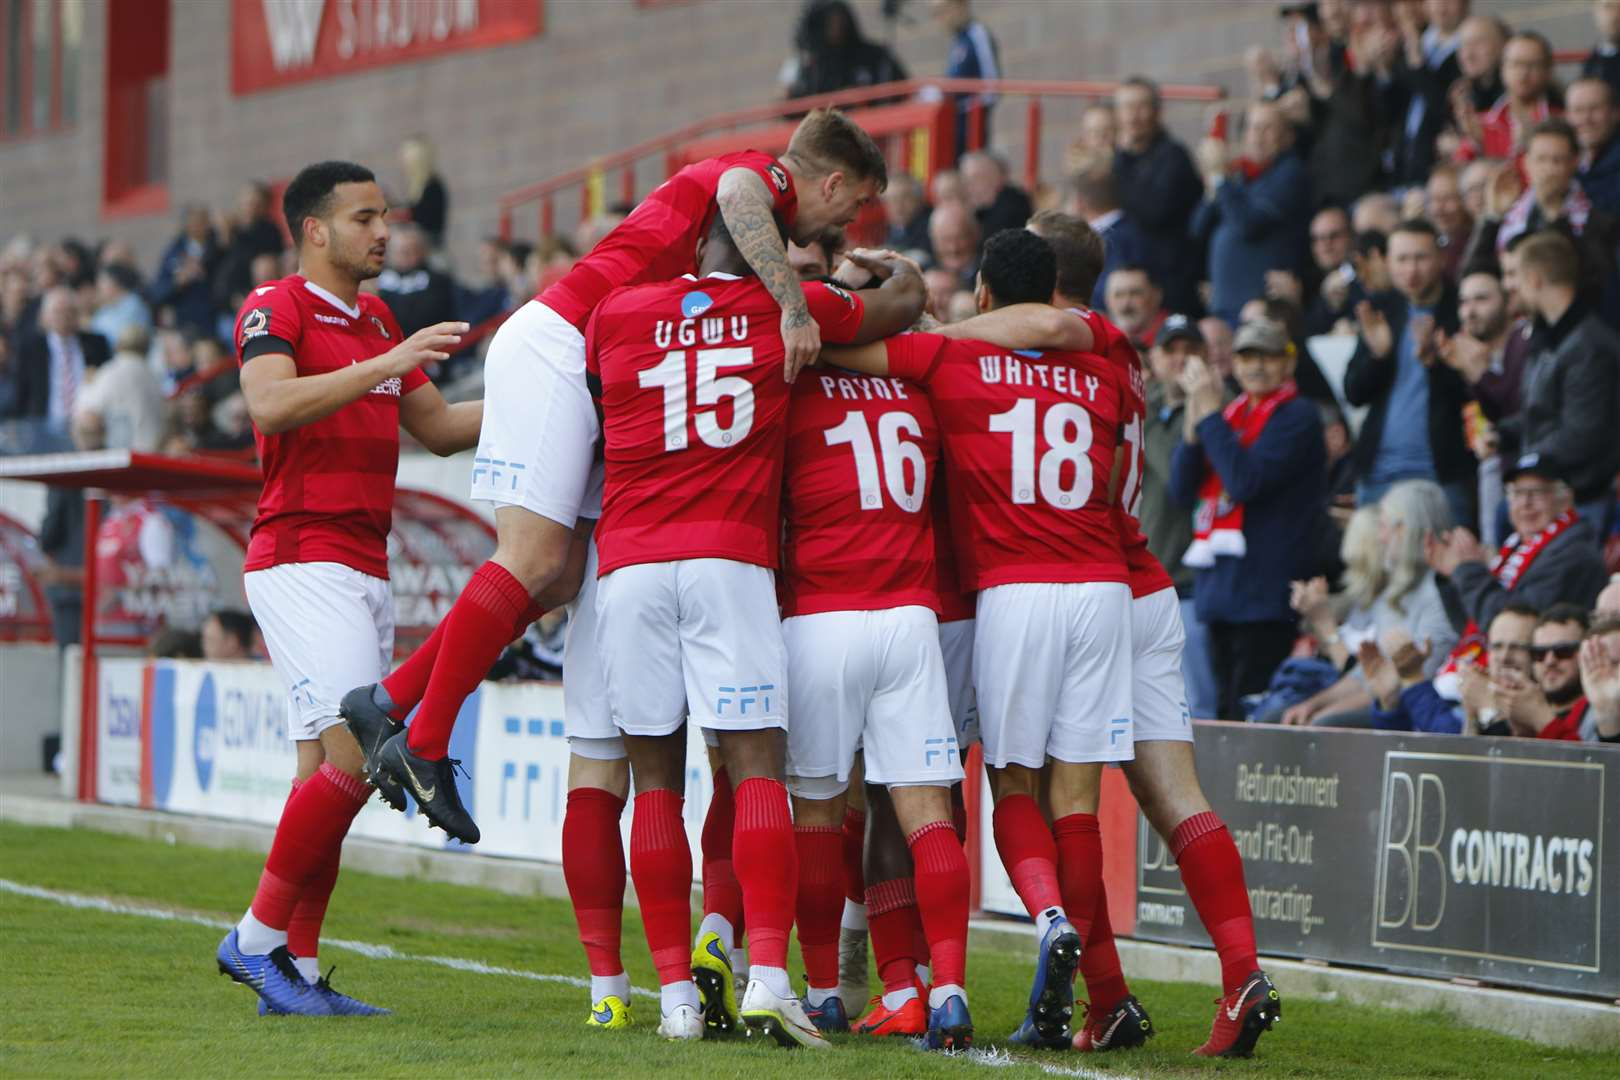 Ebbsfleet celebrate taking the lead against Wrexham Picture: Andy Jones